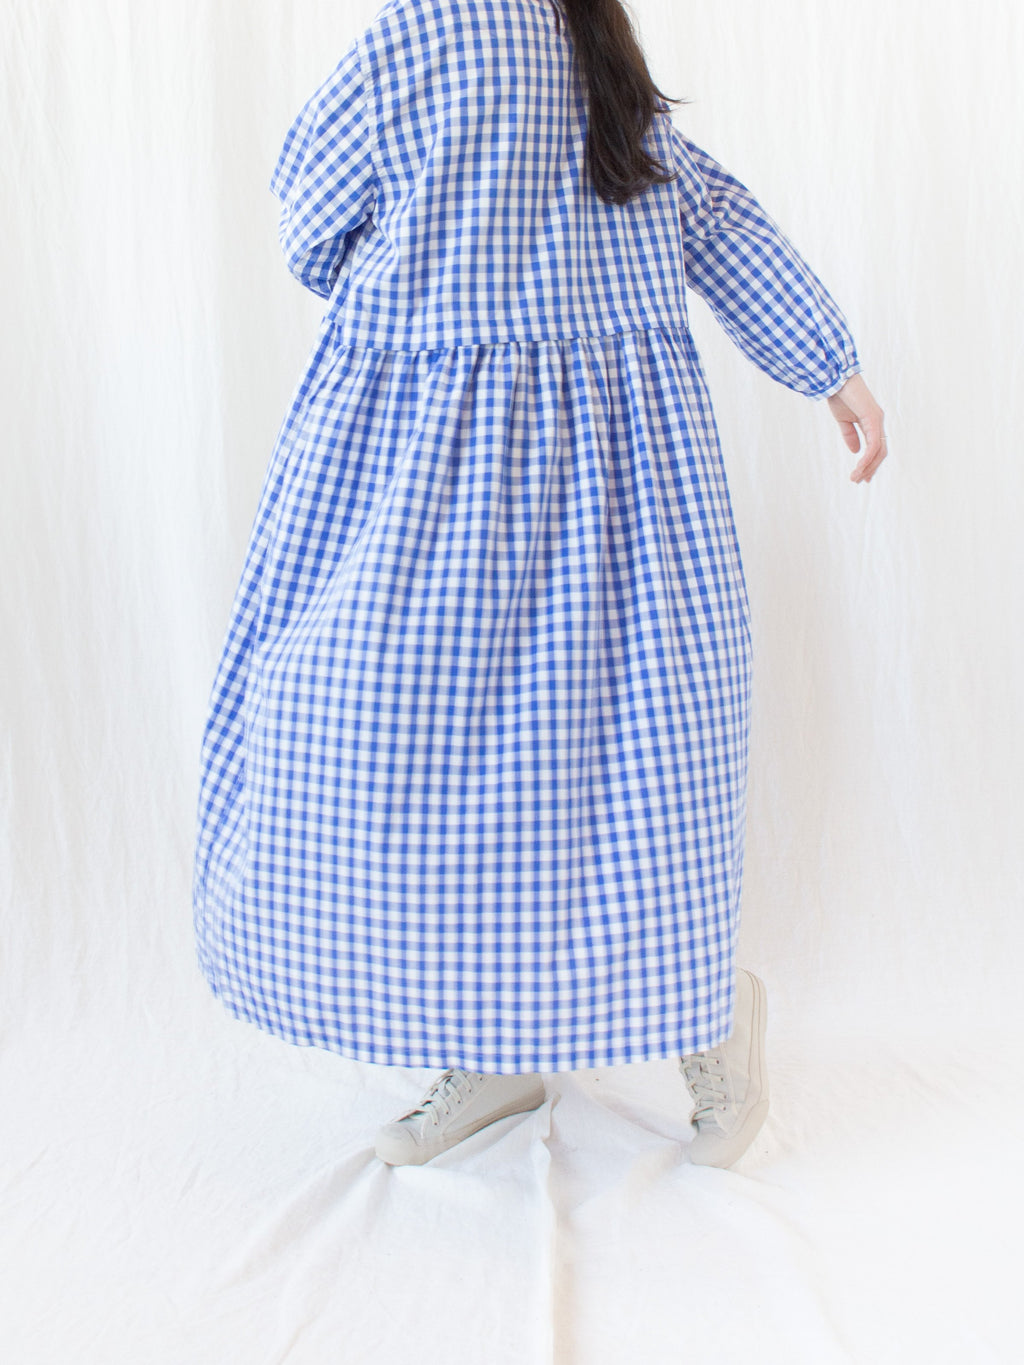 Namu Shop - Ichi Antiquites Cotton Dress - Blue Gingham